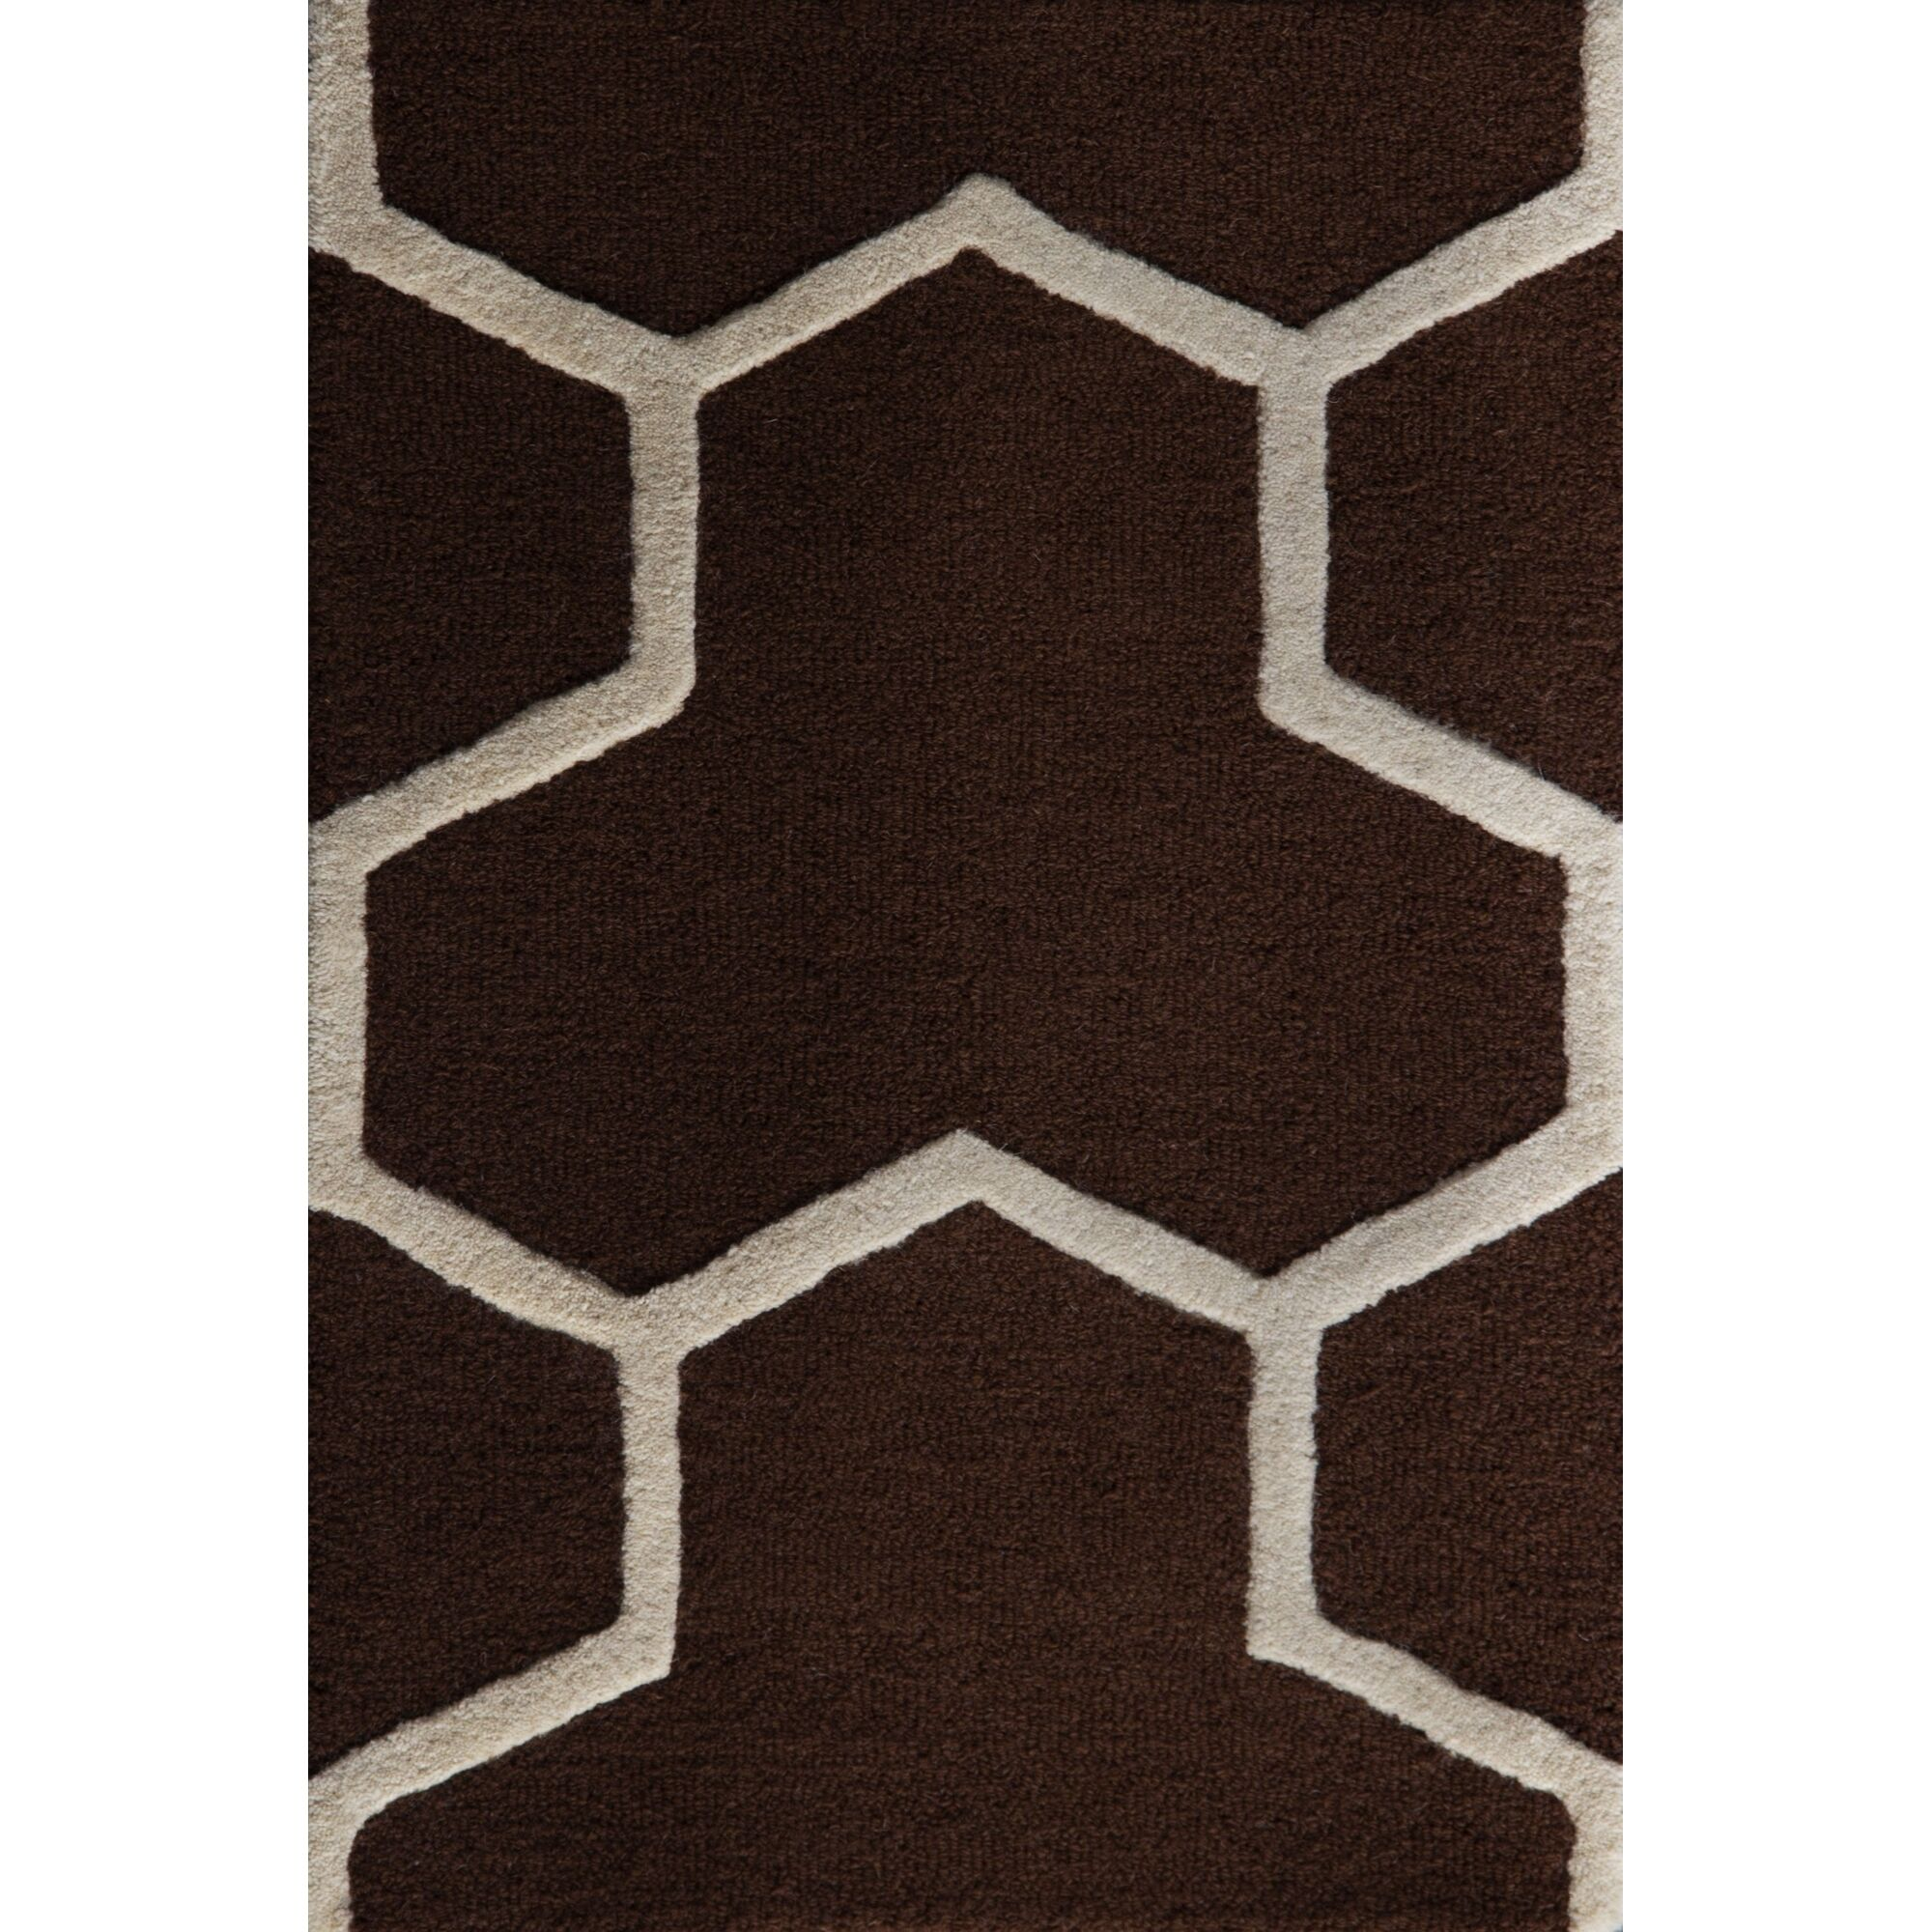 Martins Hand-Tufted Wool Brown/Ivory Area Rug Rug Size: Rectangle 9' x 12'